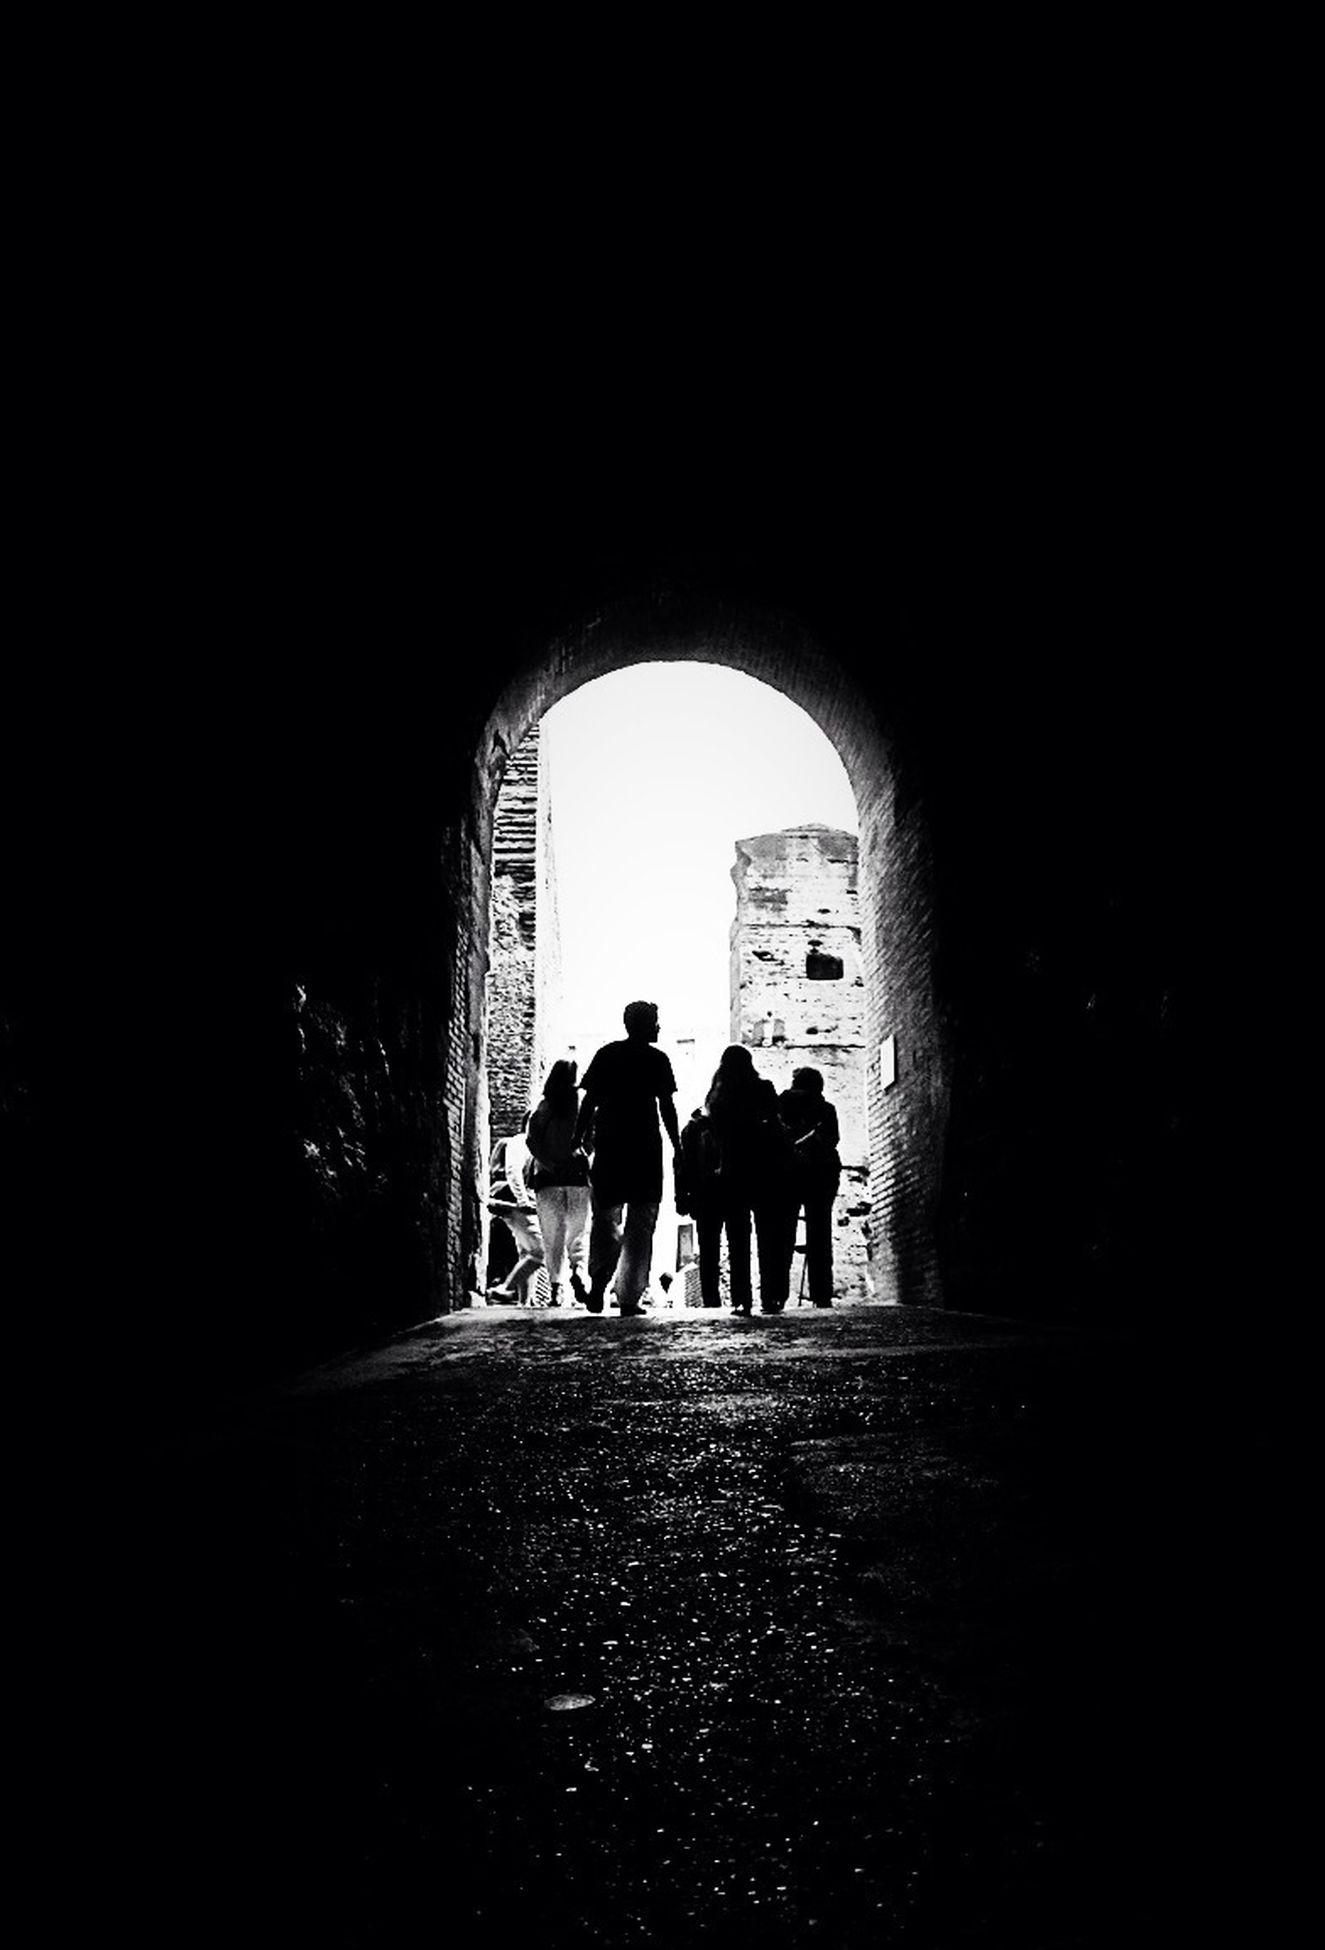 silhouette, indoors, men, full length, arch, lifestyles, togetherness, tunnel, dark, rear view, leisure activity, bonding, walking, standing, person, archway, friendship, love